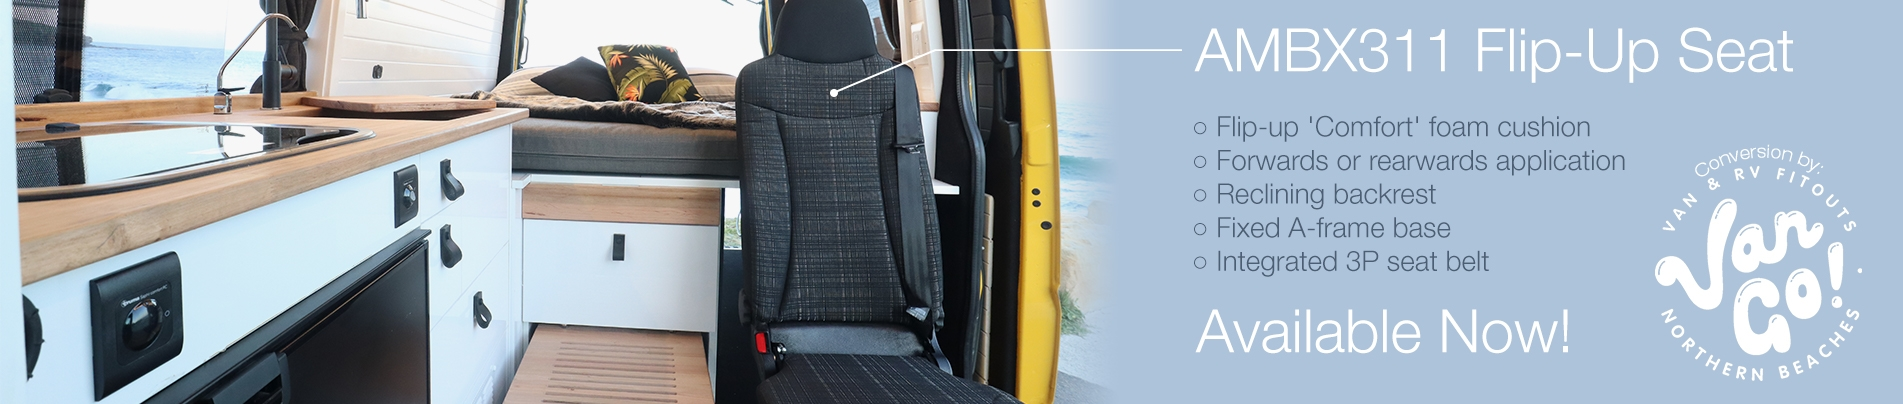 Van Go! AMBX311 Flip-Up Seat